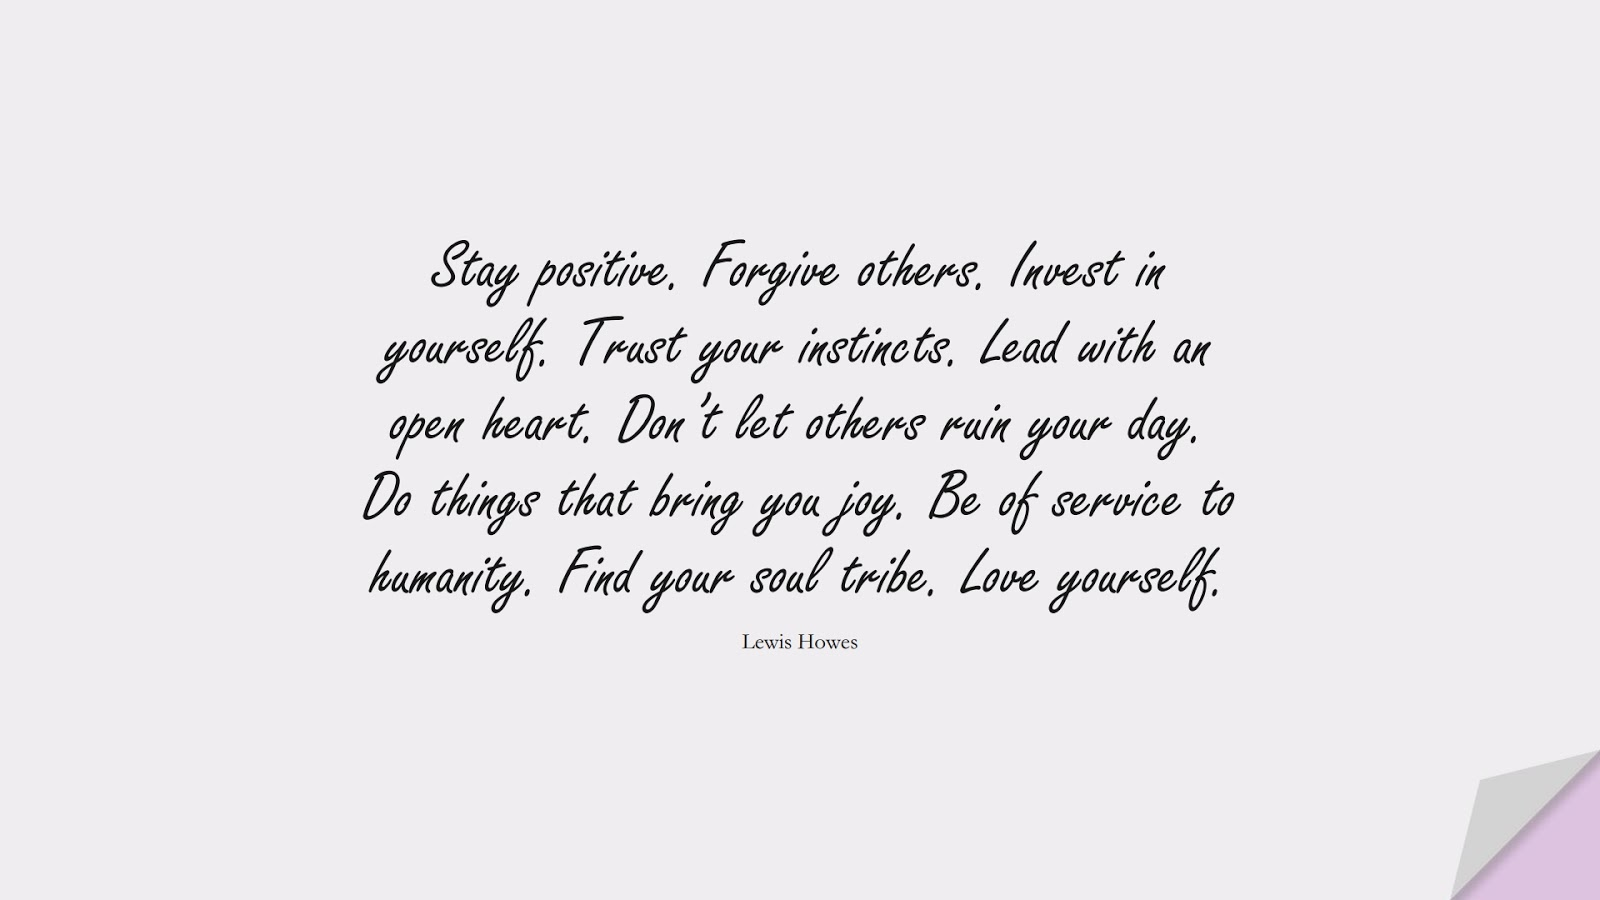 Stay positive. Forgive others. Invest in yourself. Trust your instincts. Lead with an open heart. Don't let others ruin your day. Do things that bring you joy. Be of service to humanity. Find your soul tribe. Love yourself. (Lewis Howes);  #PositiveQuotes